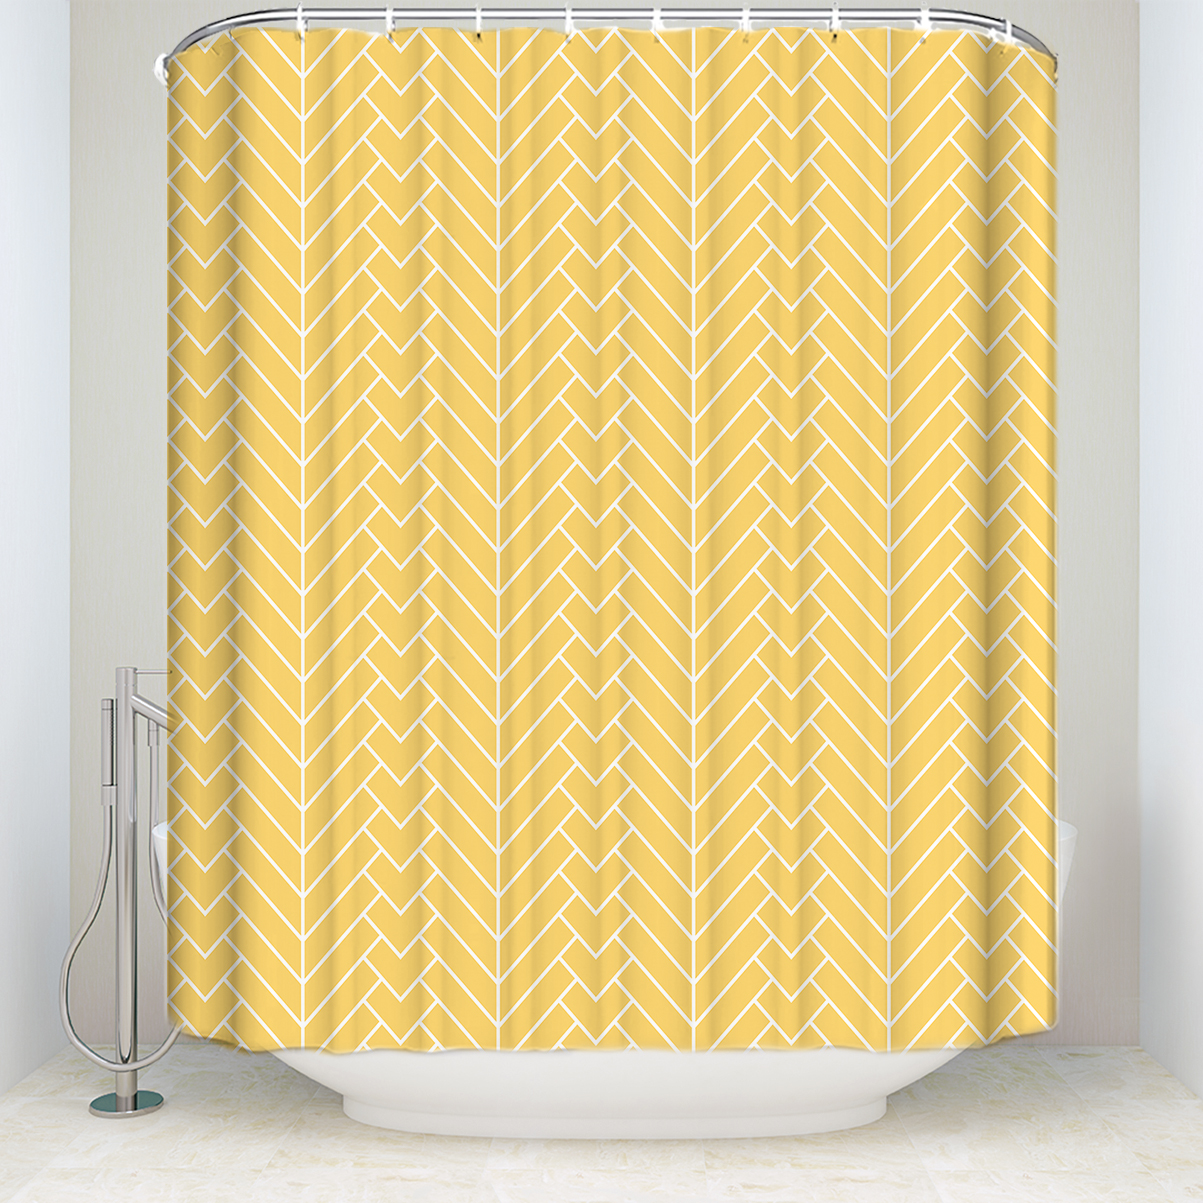 Us 16 97 45 Off New Arrival Waterproof Natural Herringbone Stripe Shower Curtain Polyester Fabric Yellow Bathroom Curtains For Home Decorations In